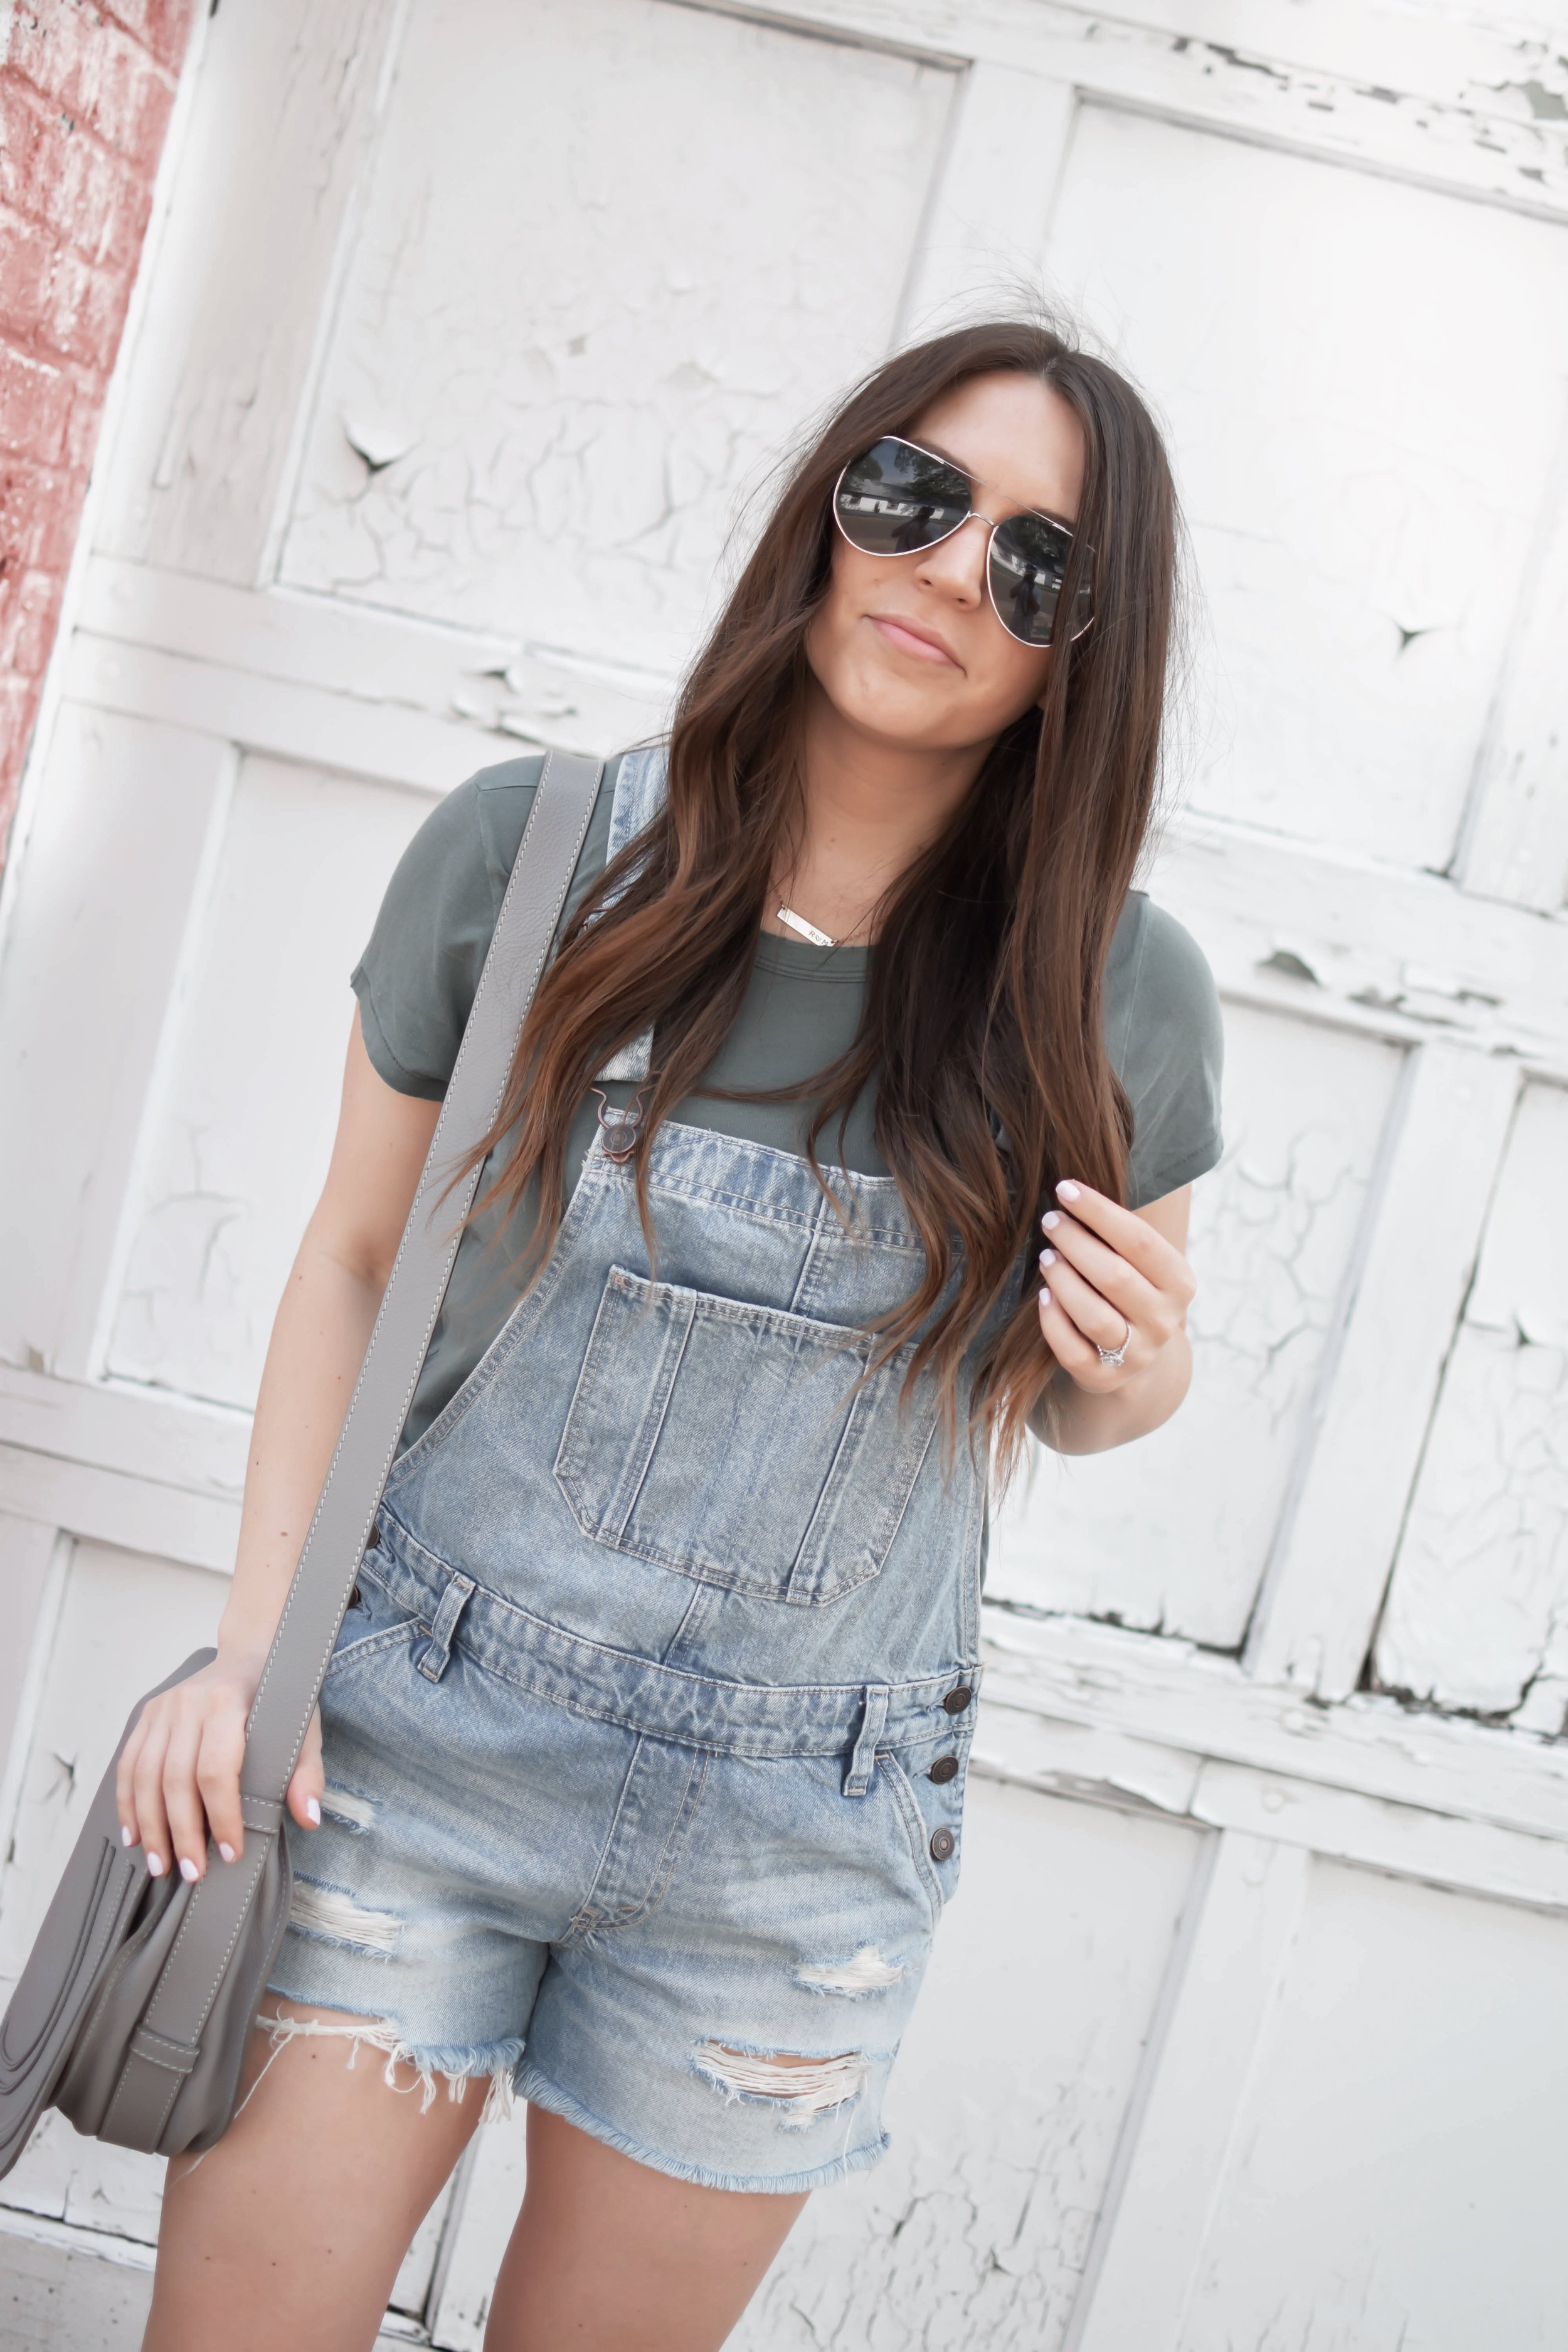 How to Style Overalls   Pine Barren Beauty   how to wear overalls, Abercrombie overalls, basic tee, Vince slip ons, summer outfit idea, summer outfit inspiration